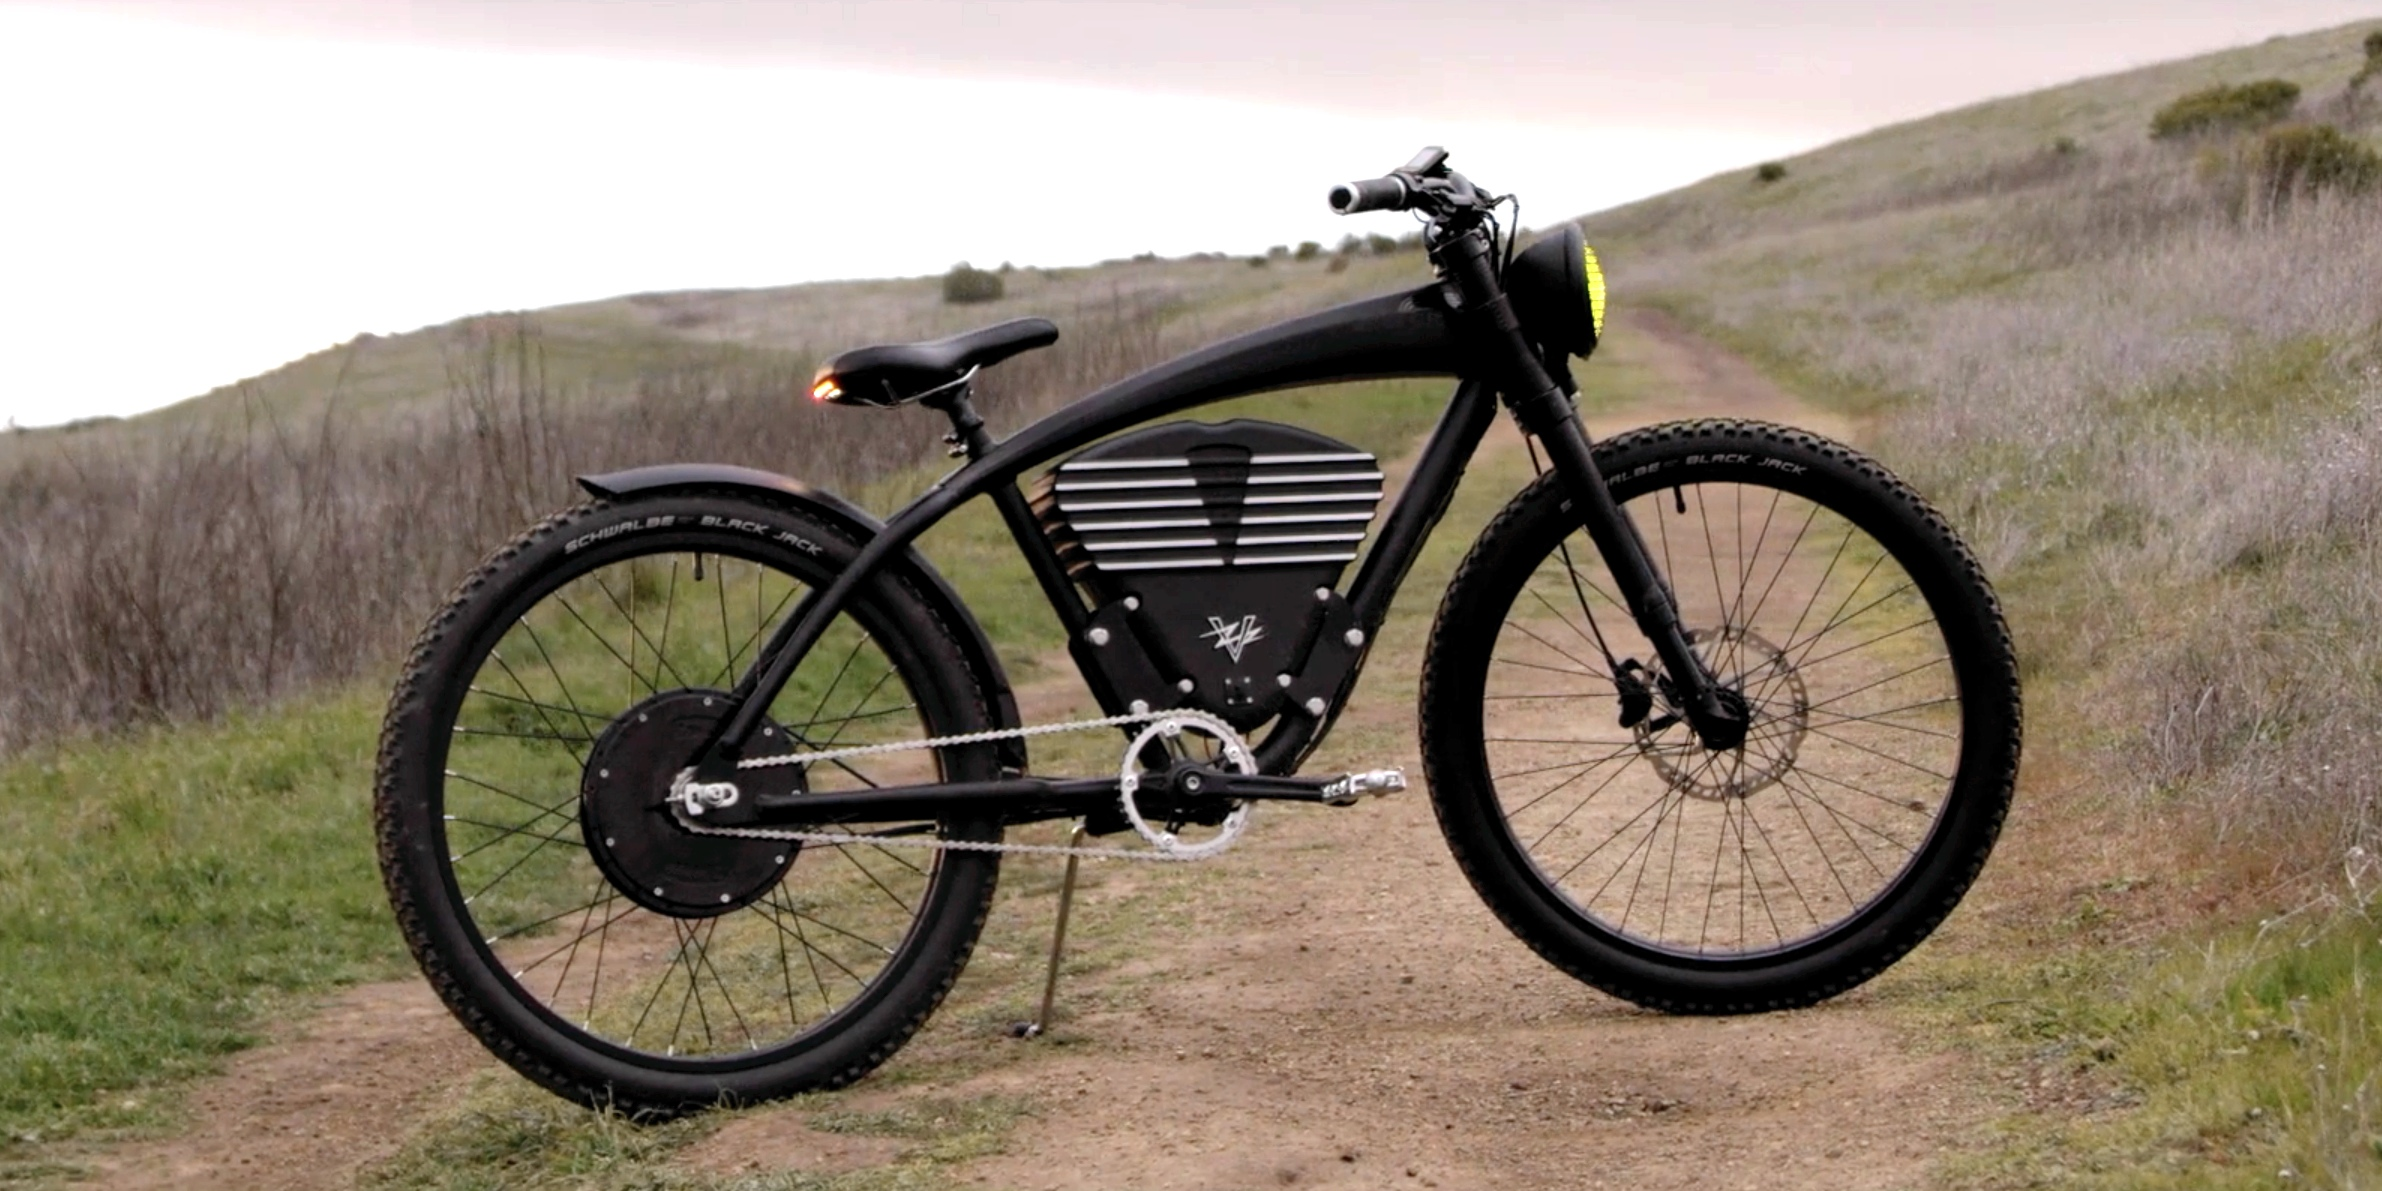 WWII-inspired electric bicycle pushes the envelope at 36 mph